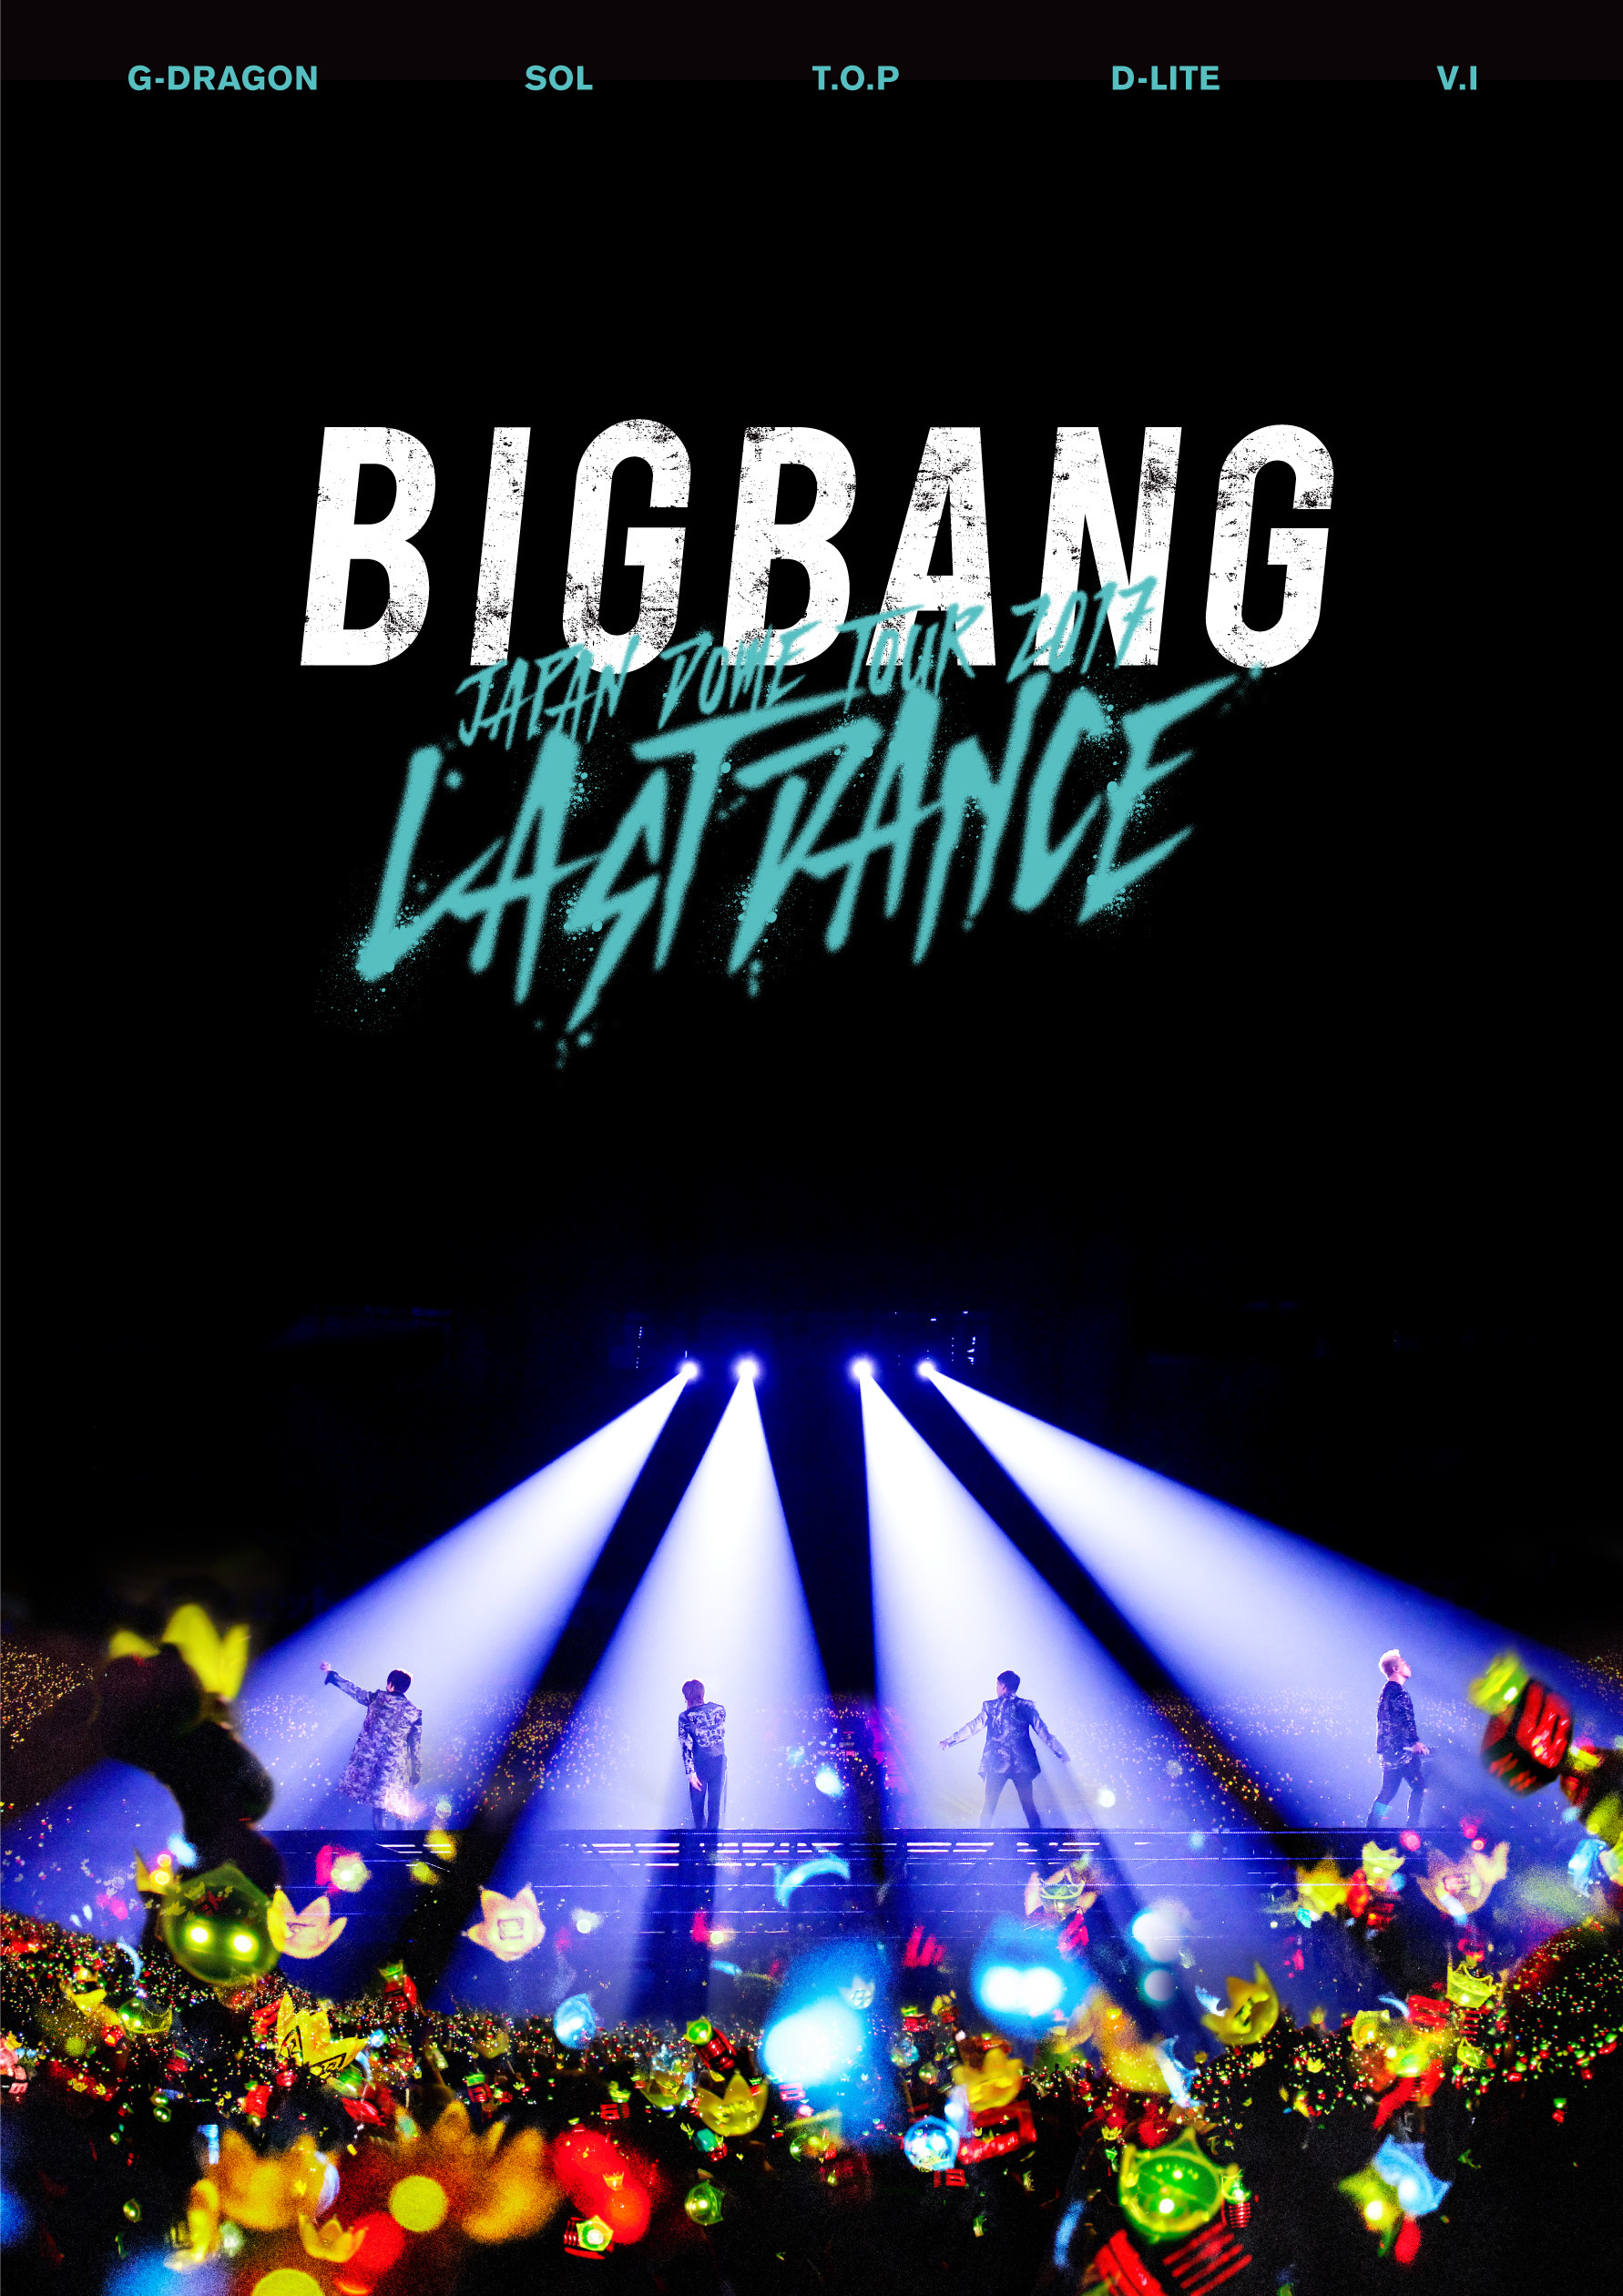 『BIGBANG JAPAN DOME TOUR 2017 -LAST DANCE-』